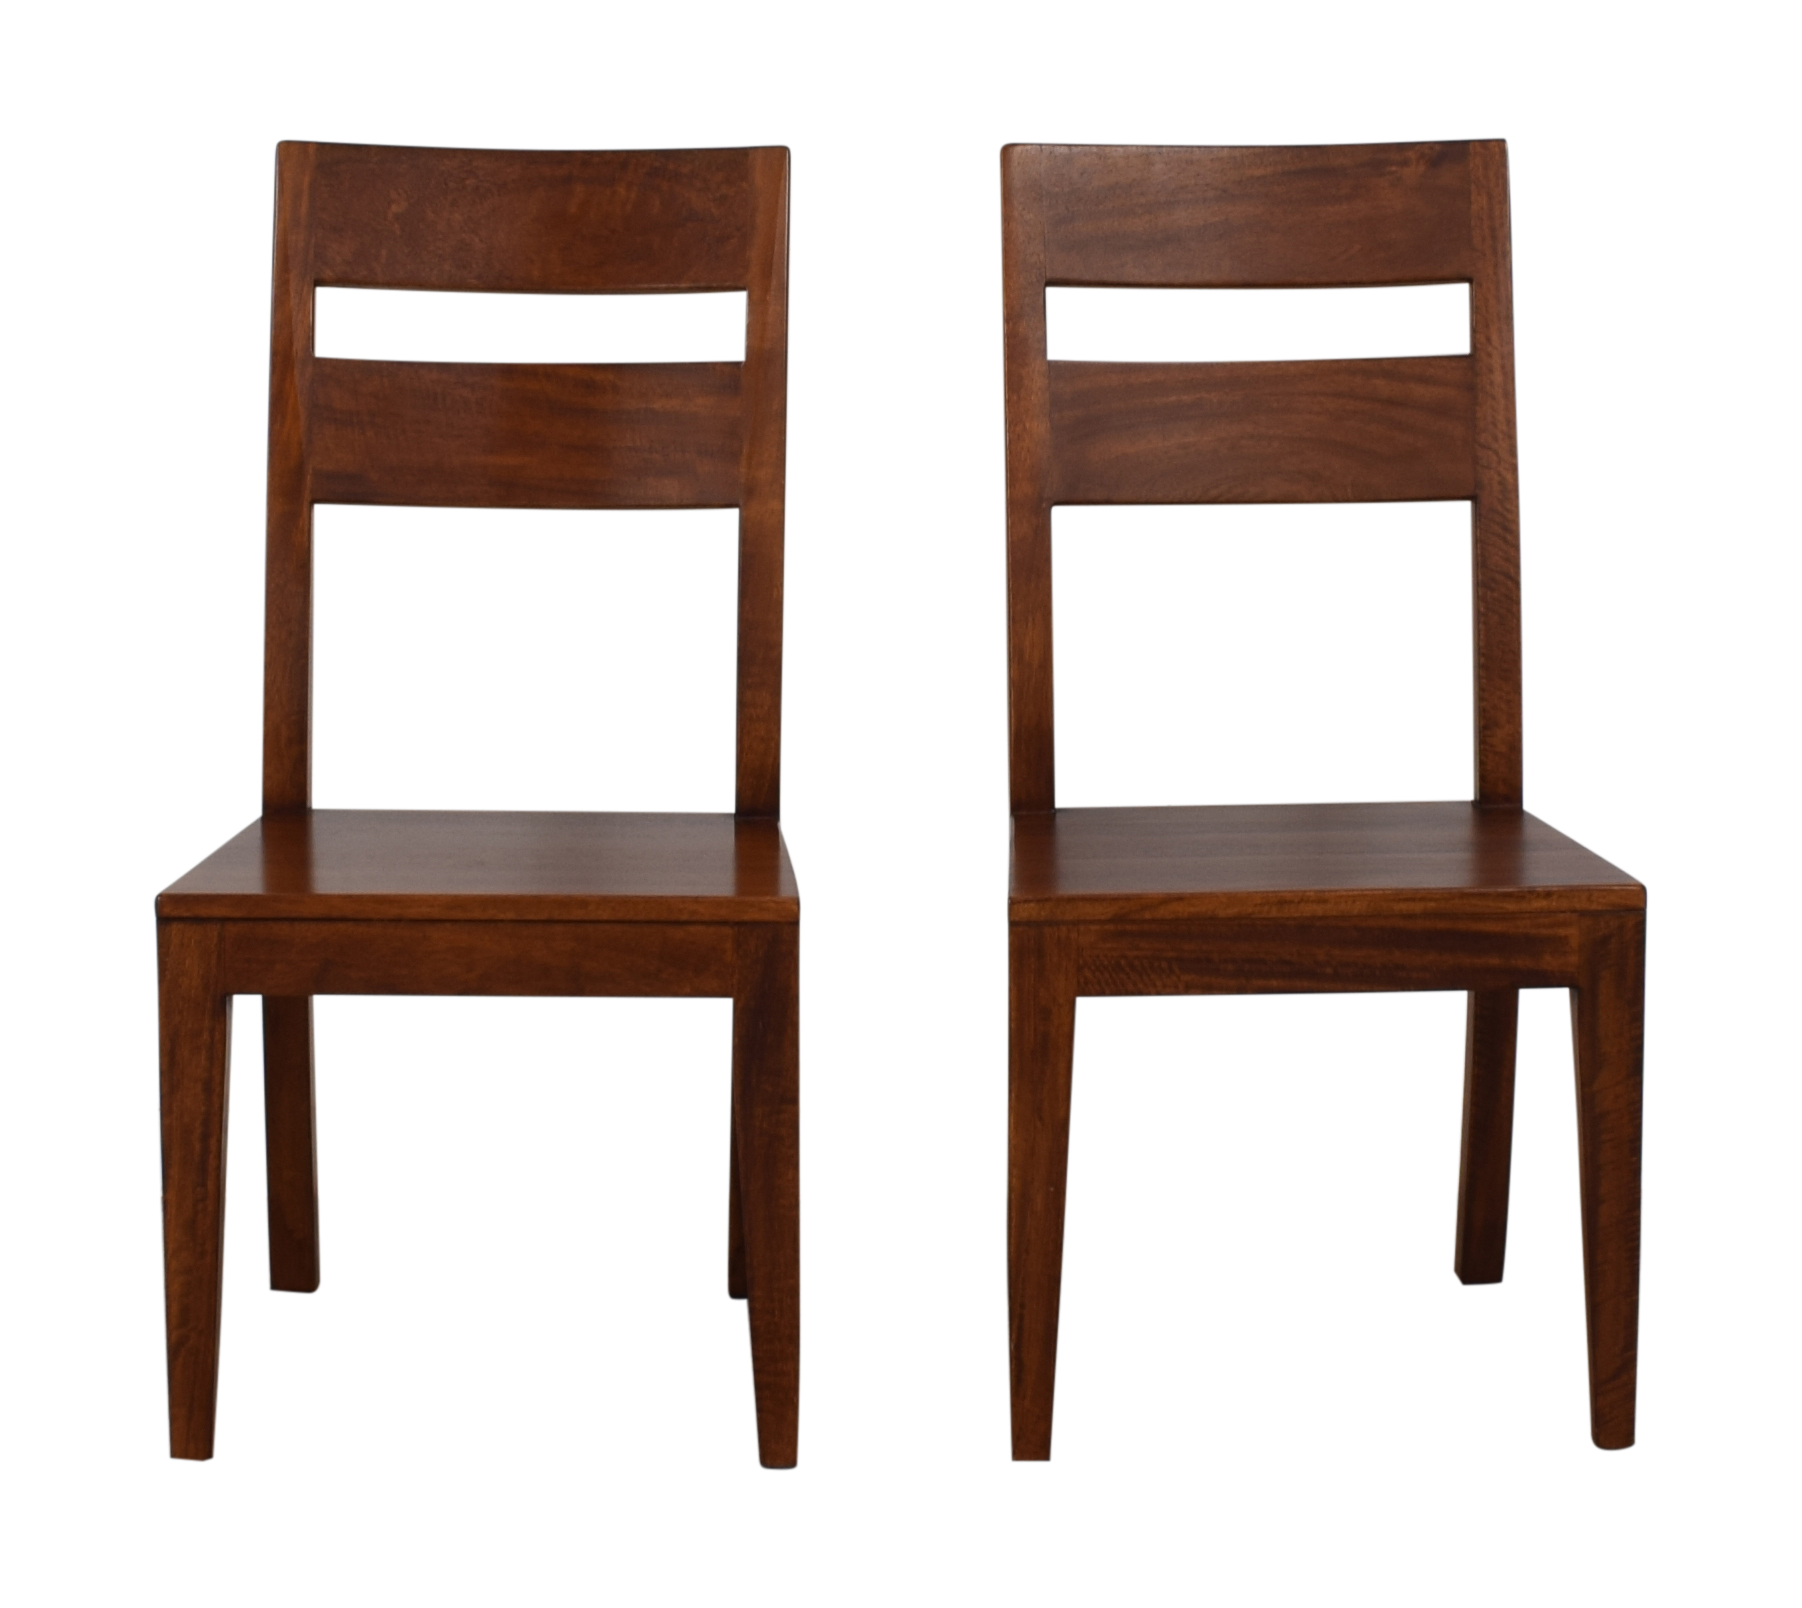 Crate & Barrel Crate & Barrel Basque Honey Wood Dining Chairs price